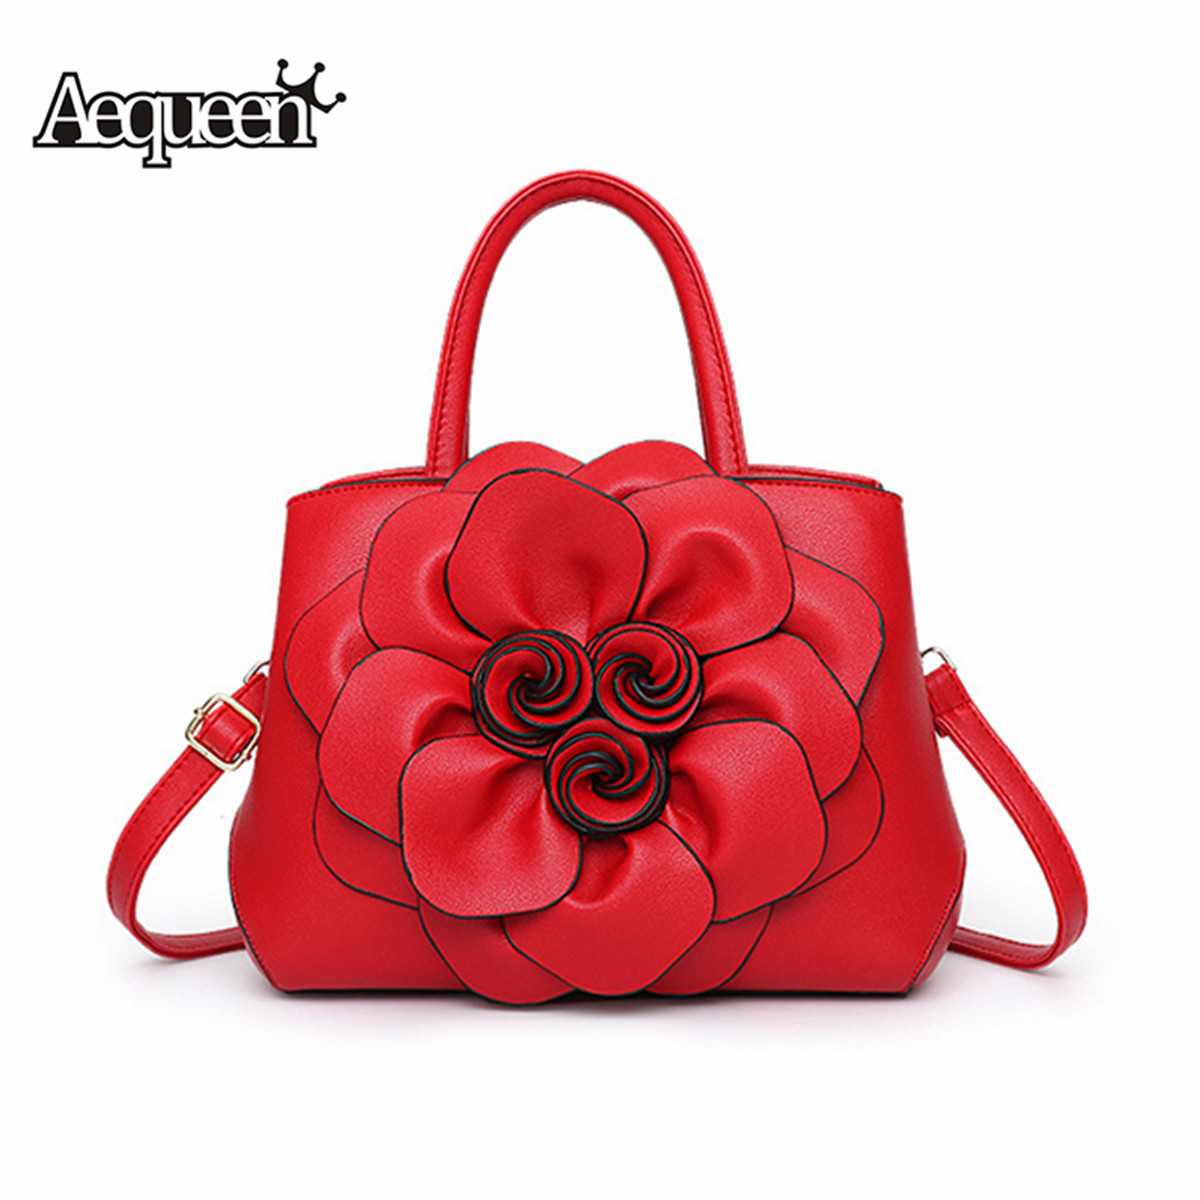 2019 Red Women Bags Luxury Handbag Female Designer Shoulder Bag Casual Shopping Tote PU Leather Hand Bags Flowers Feminine Bolsa